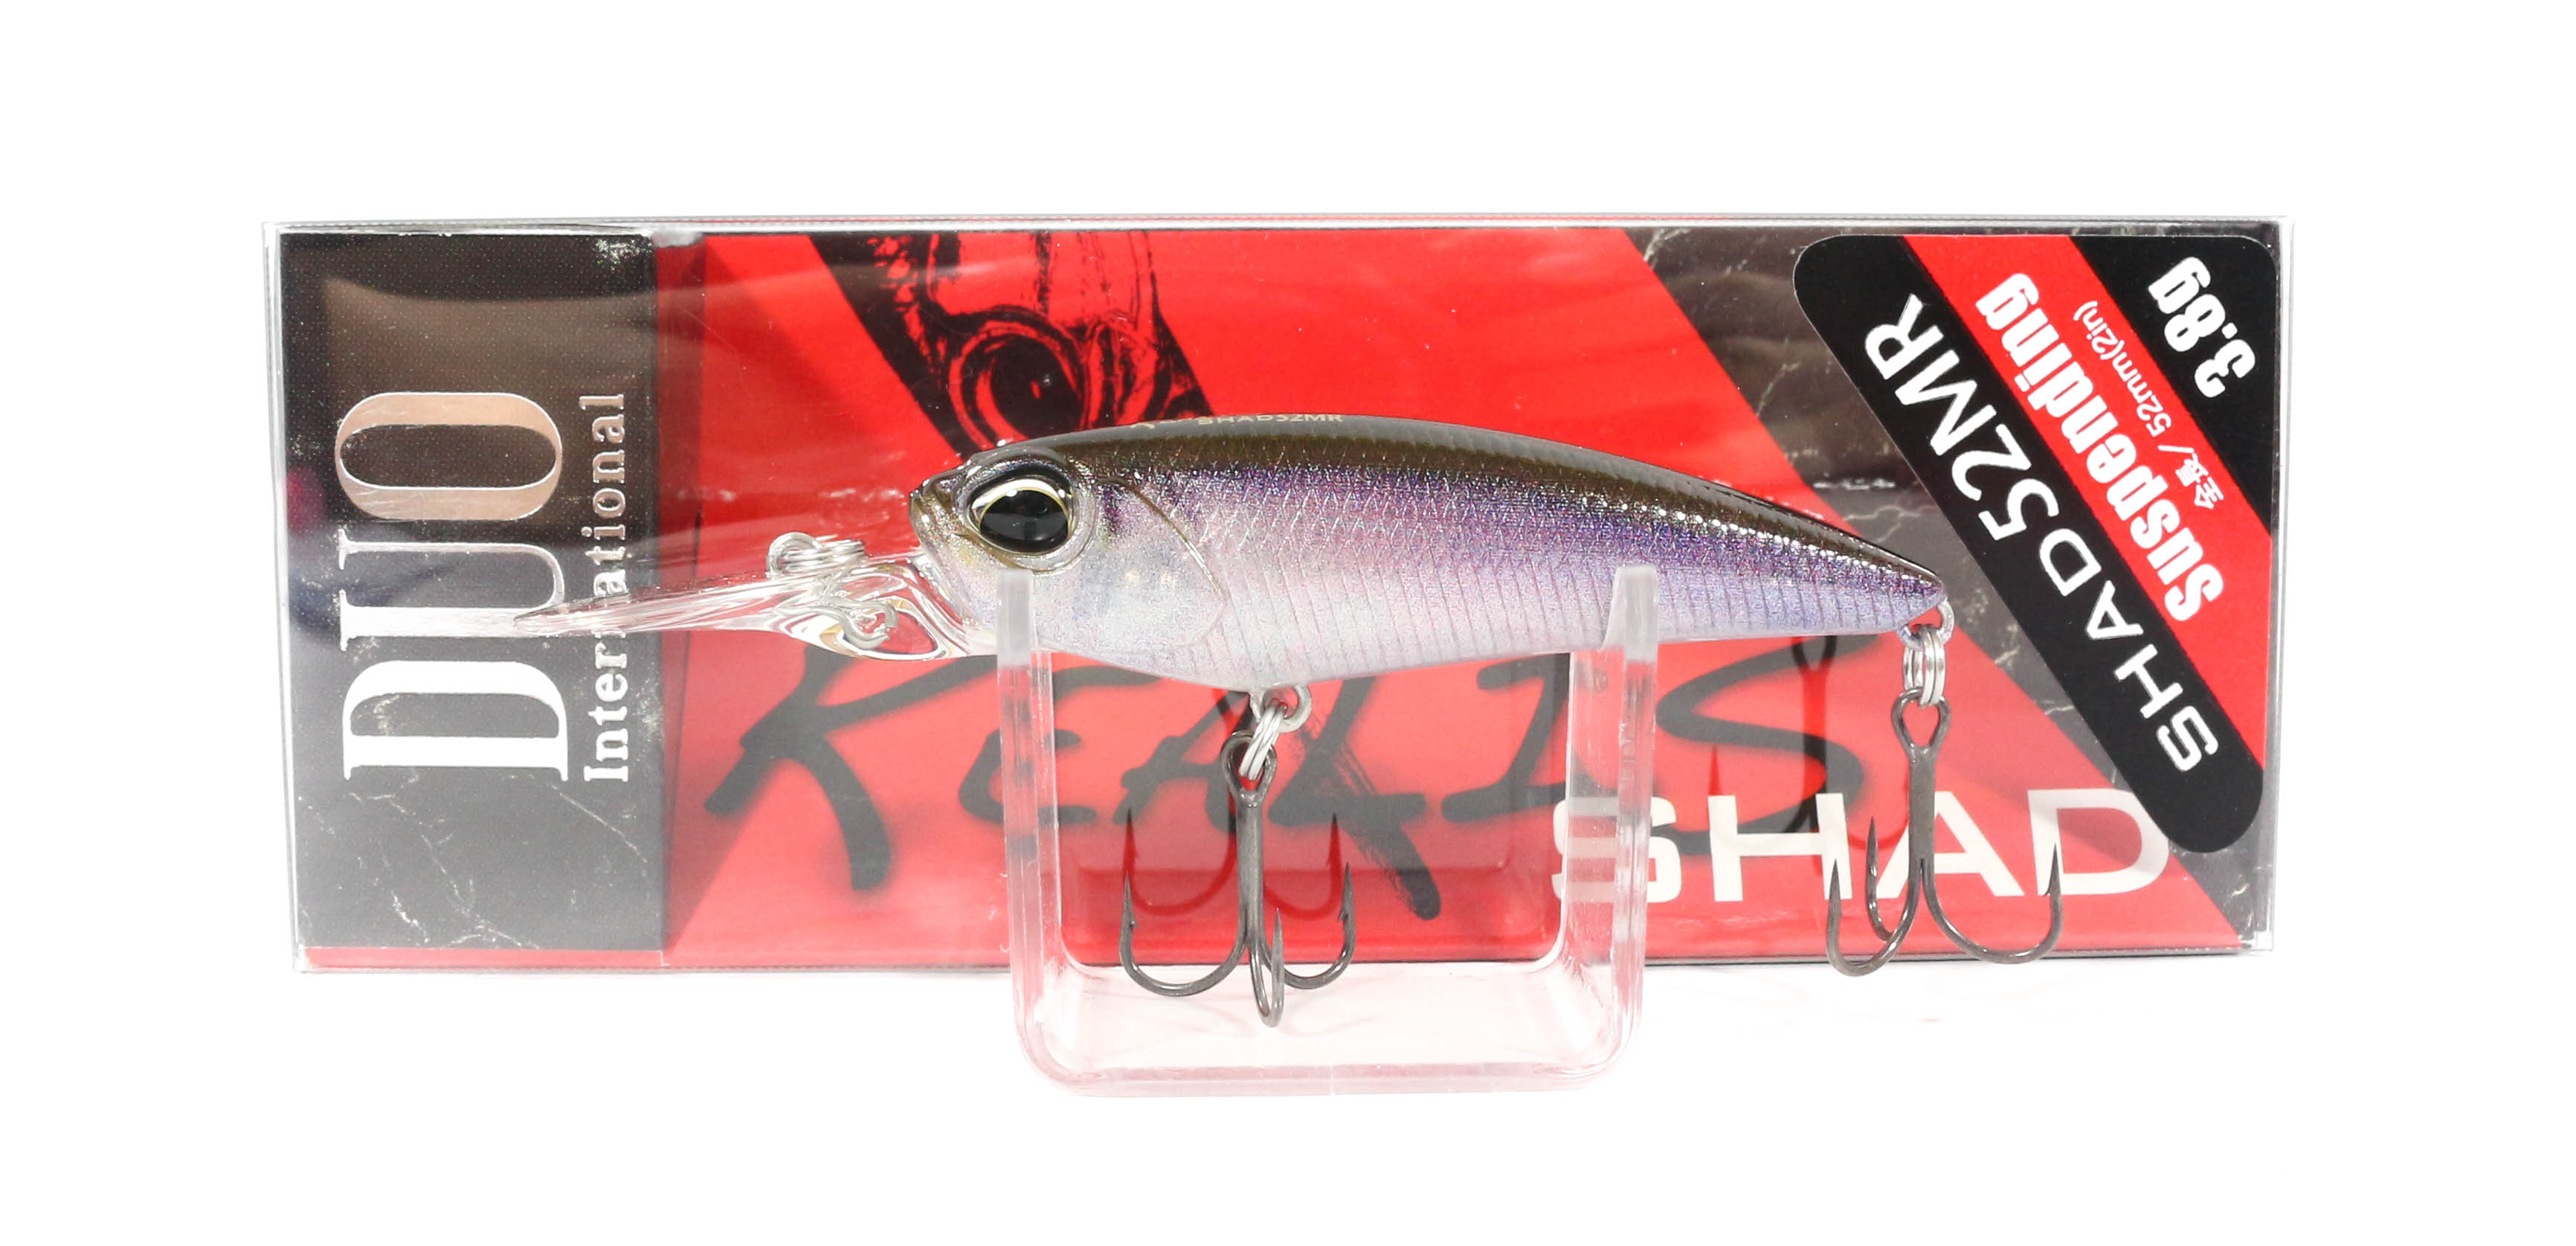 Duo Realis Shad 52 MR Suspend Lure CCC3813 (4500)